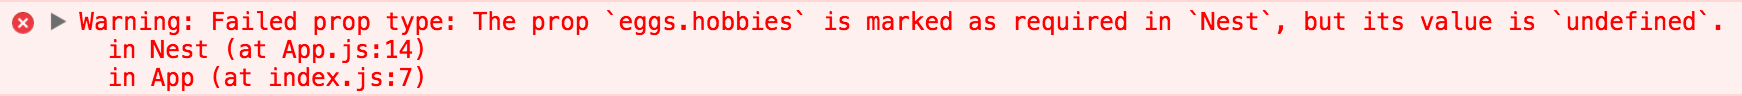 A missing required prop warning in the Chrome console